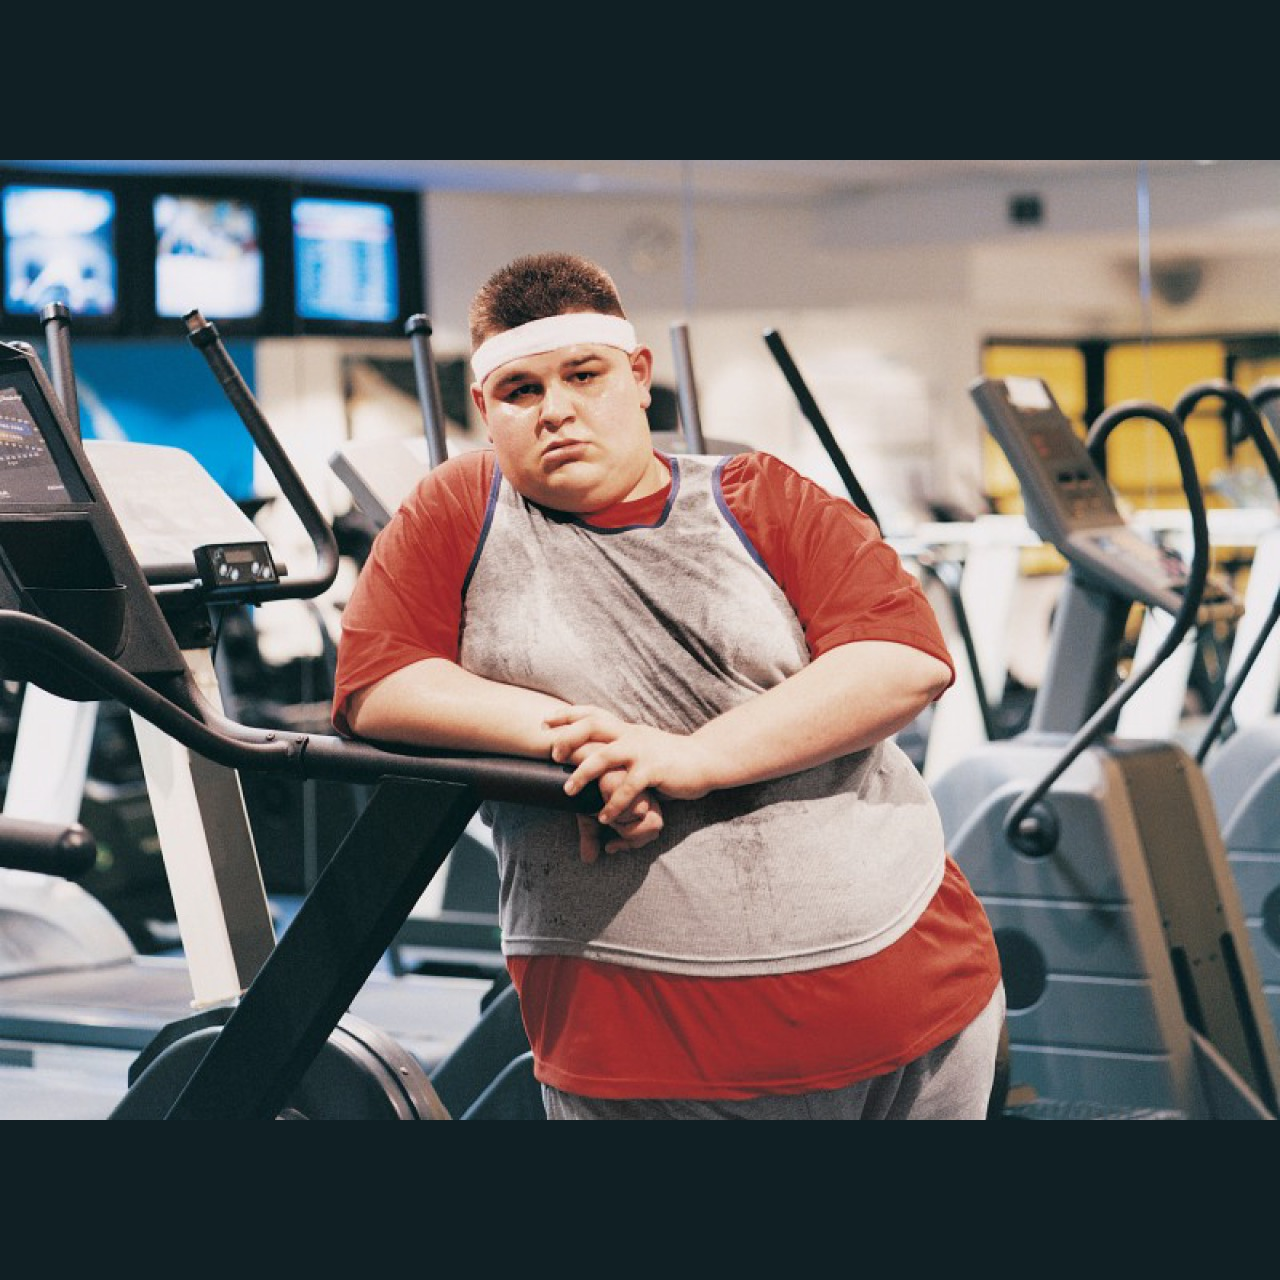 obesity, how to lose weight, and weight loss treatment image